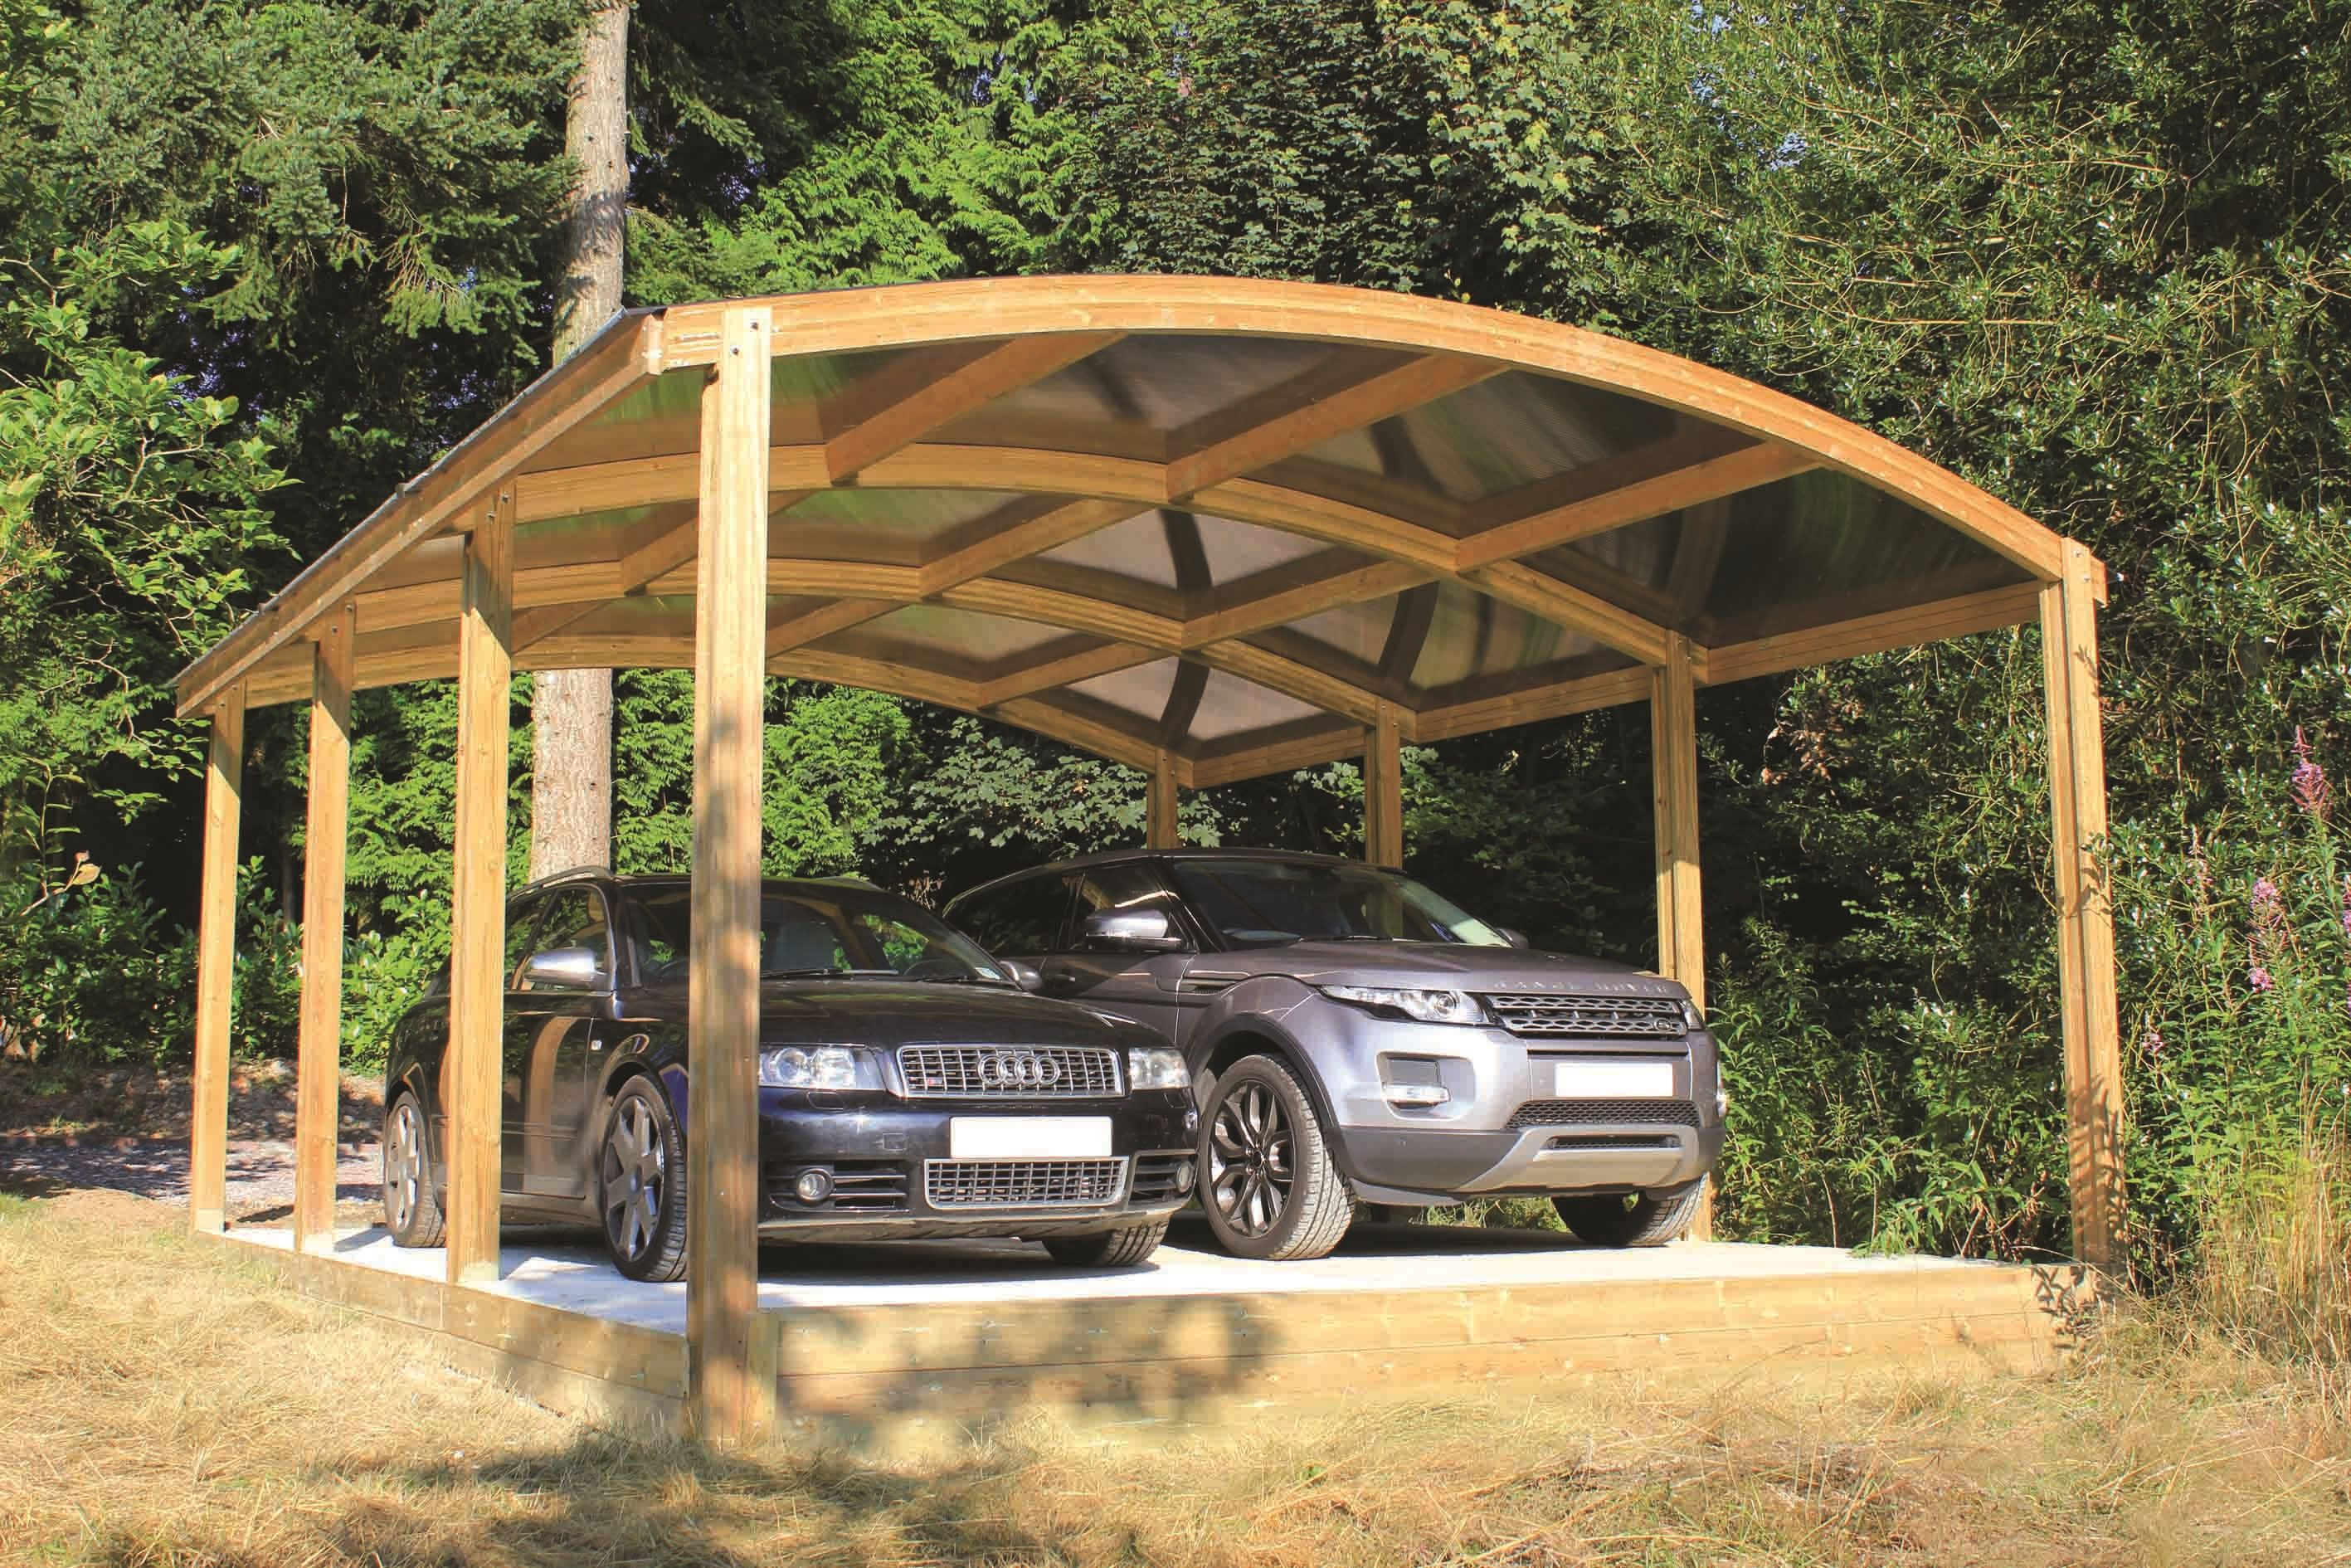 Curved Car Port Based on our standard car port, this eye